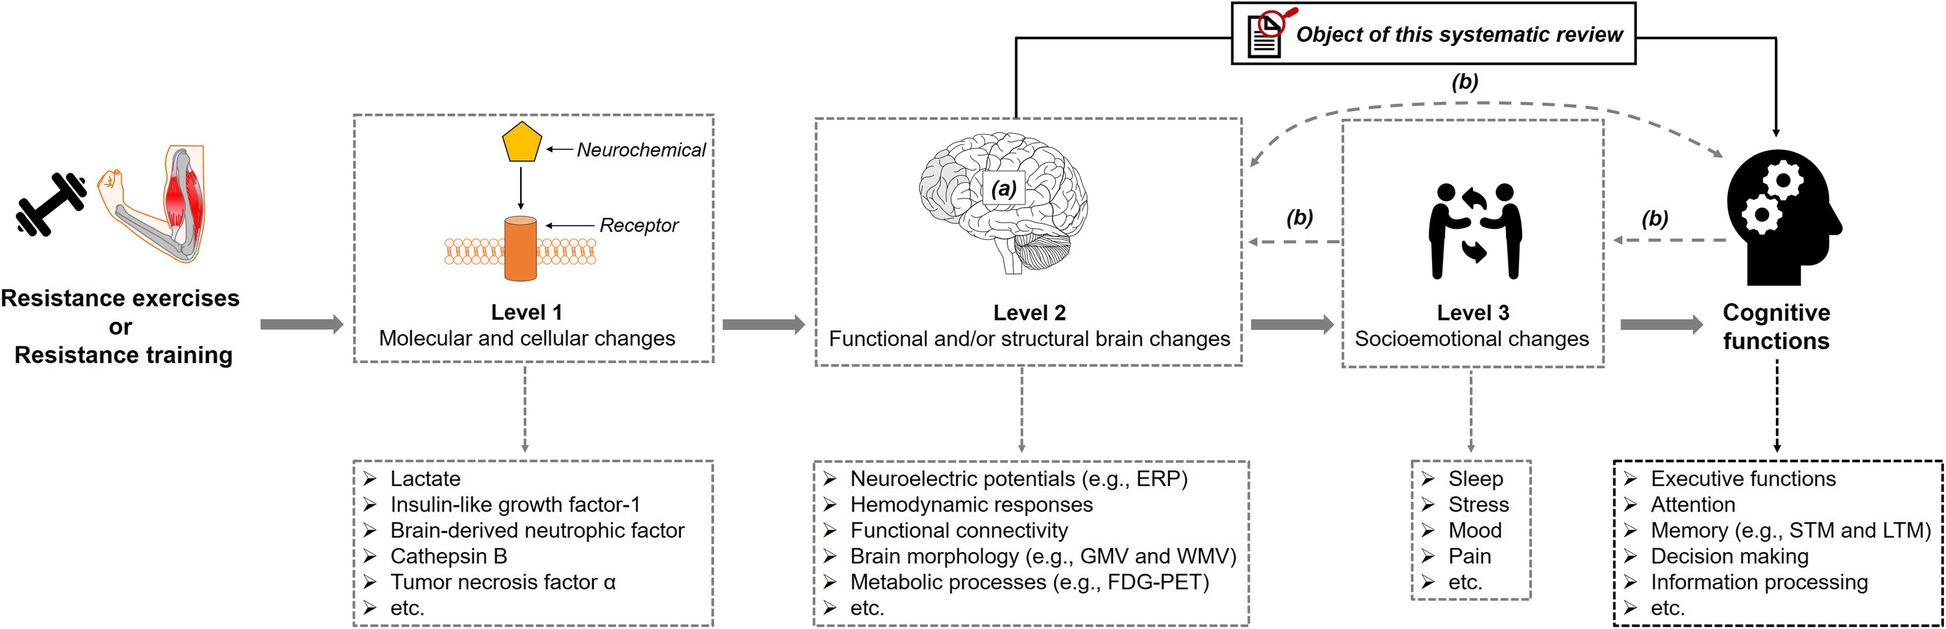 Functional and/or structural brain changes in response to